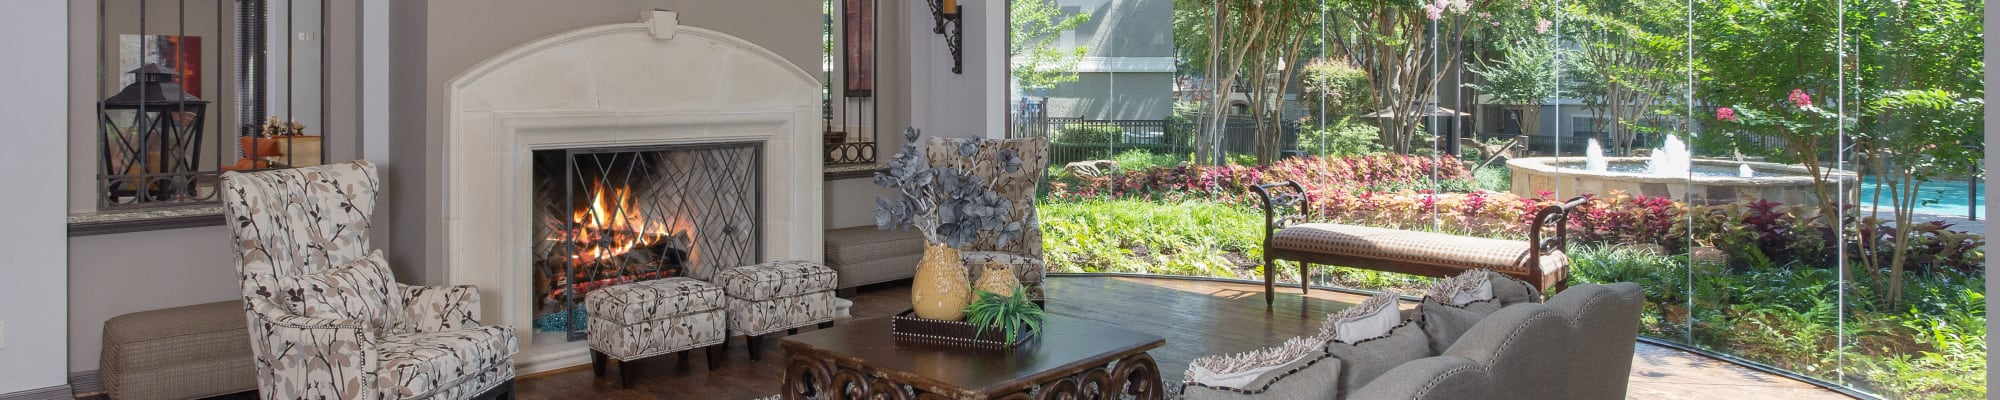 Amenities at The Verandas at Timberglen in Dallas, Texas